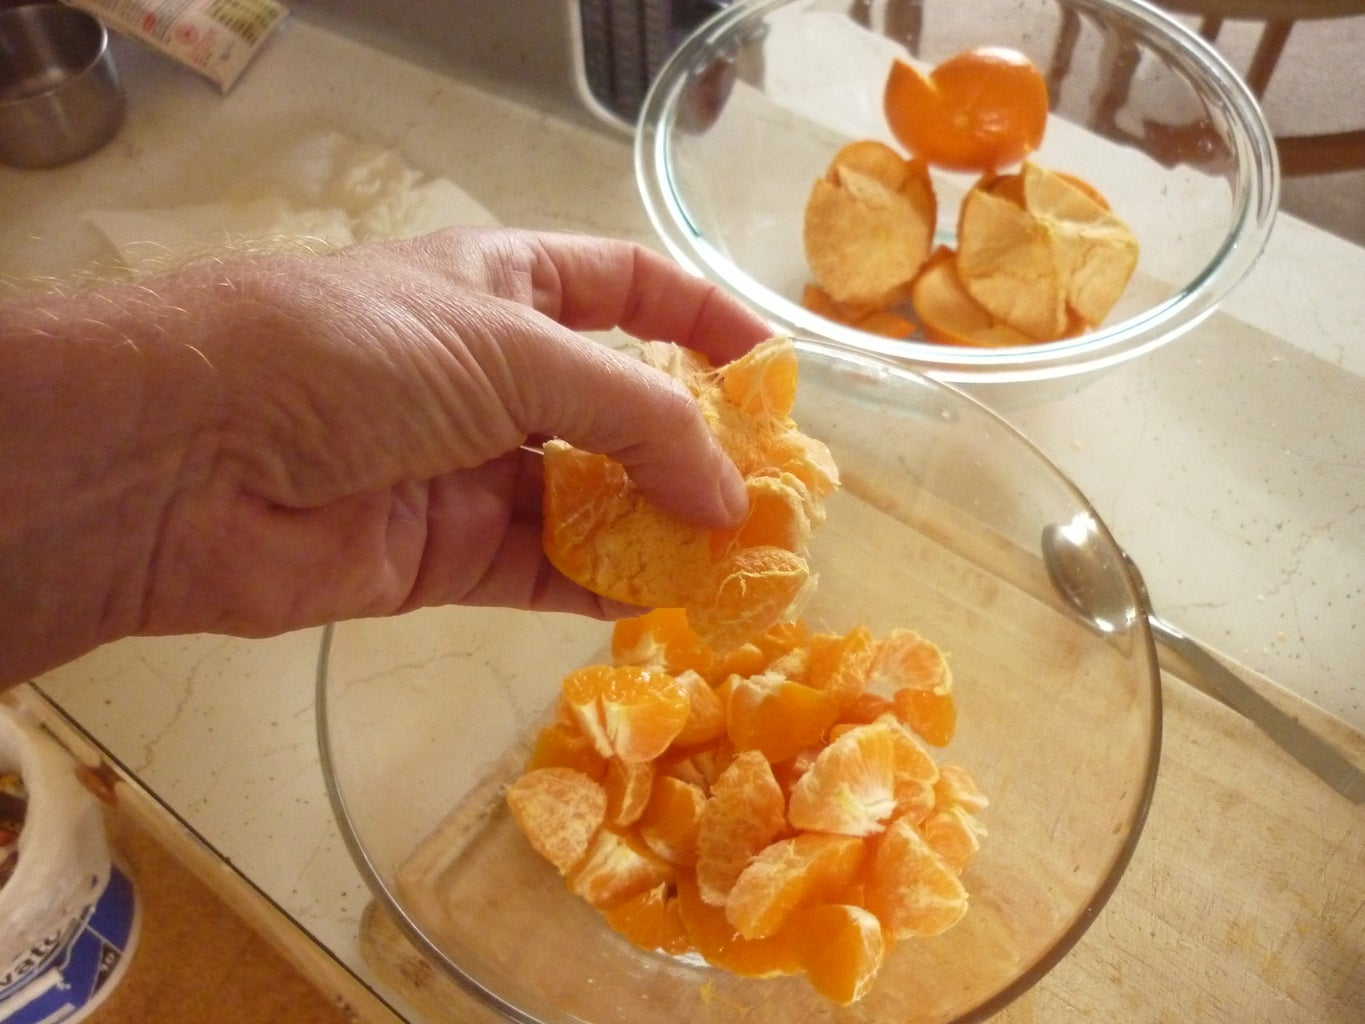 Wash and Peel the Fruit